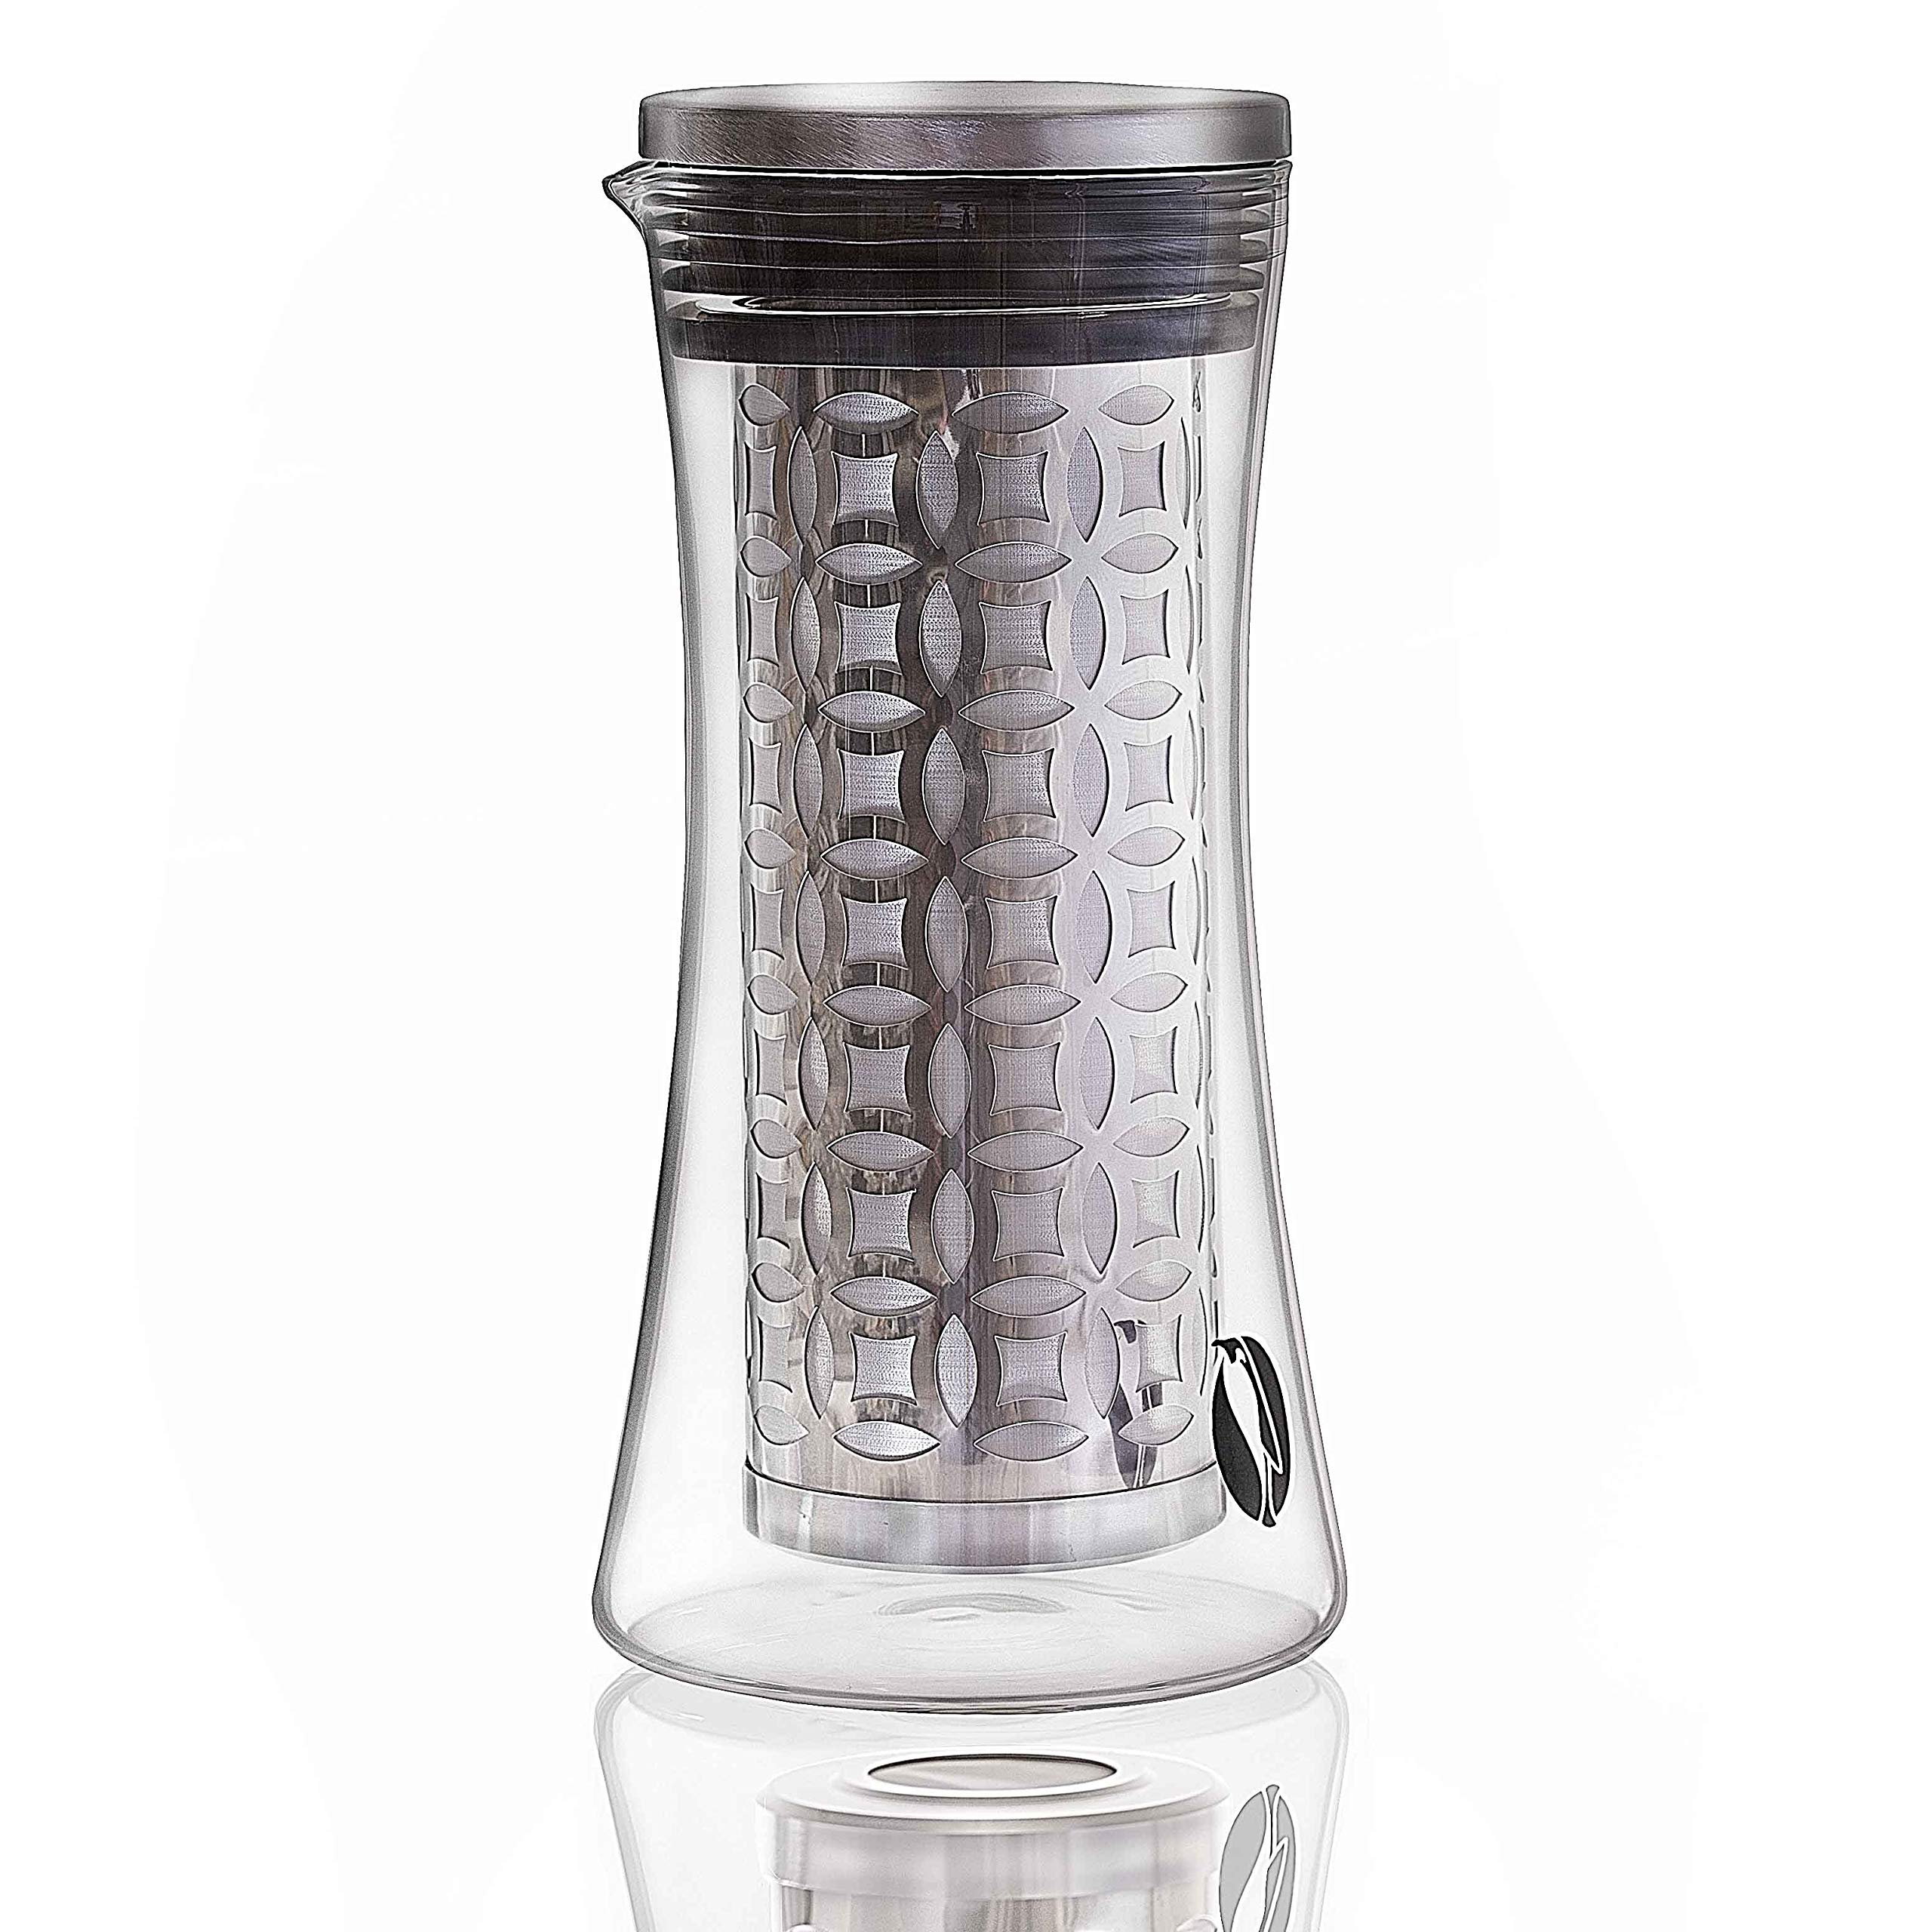 PENGUIN COFFEE- Cold Brew Iced Coffee Maker 1.2 Liter- Customers Spoke, We Listened. Version 2.0 Now Available! Thicker, Stronger Glass Pitcher. Dual Layer Stainless Steel Filter w Microscopic Holes by Penguin Coffee